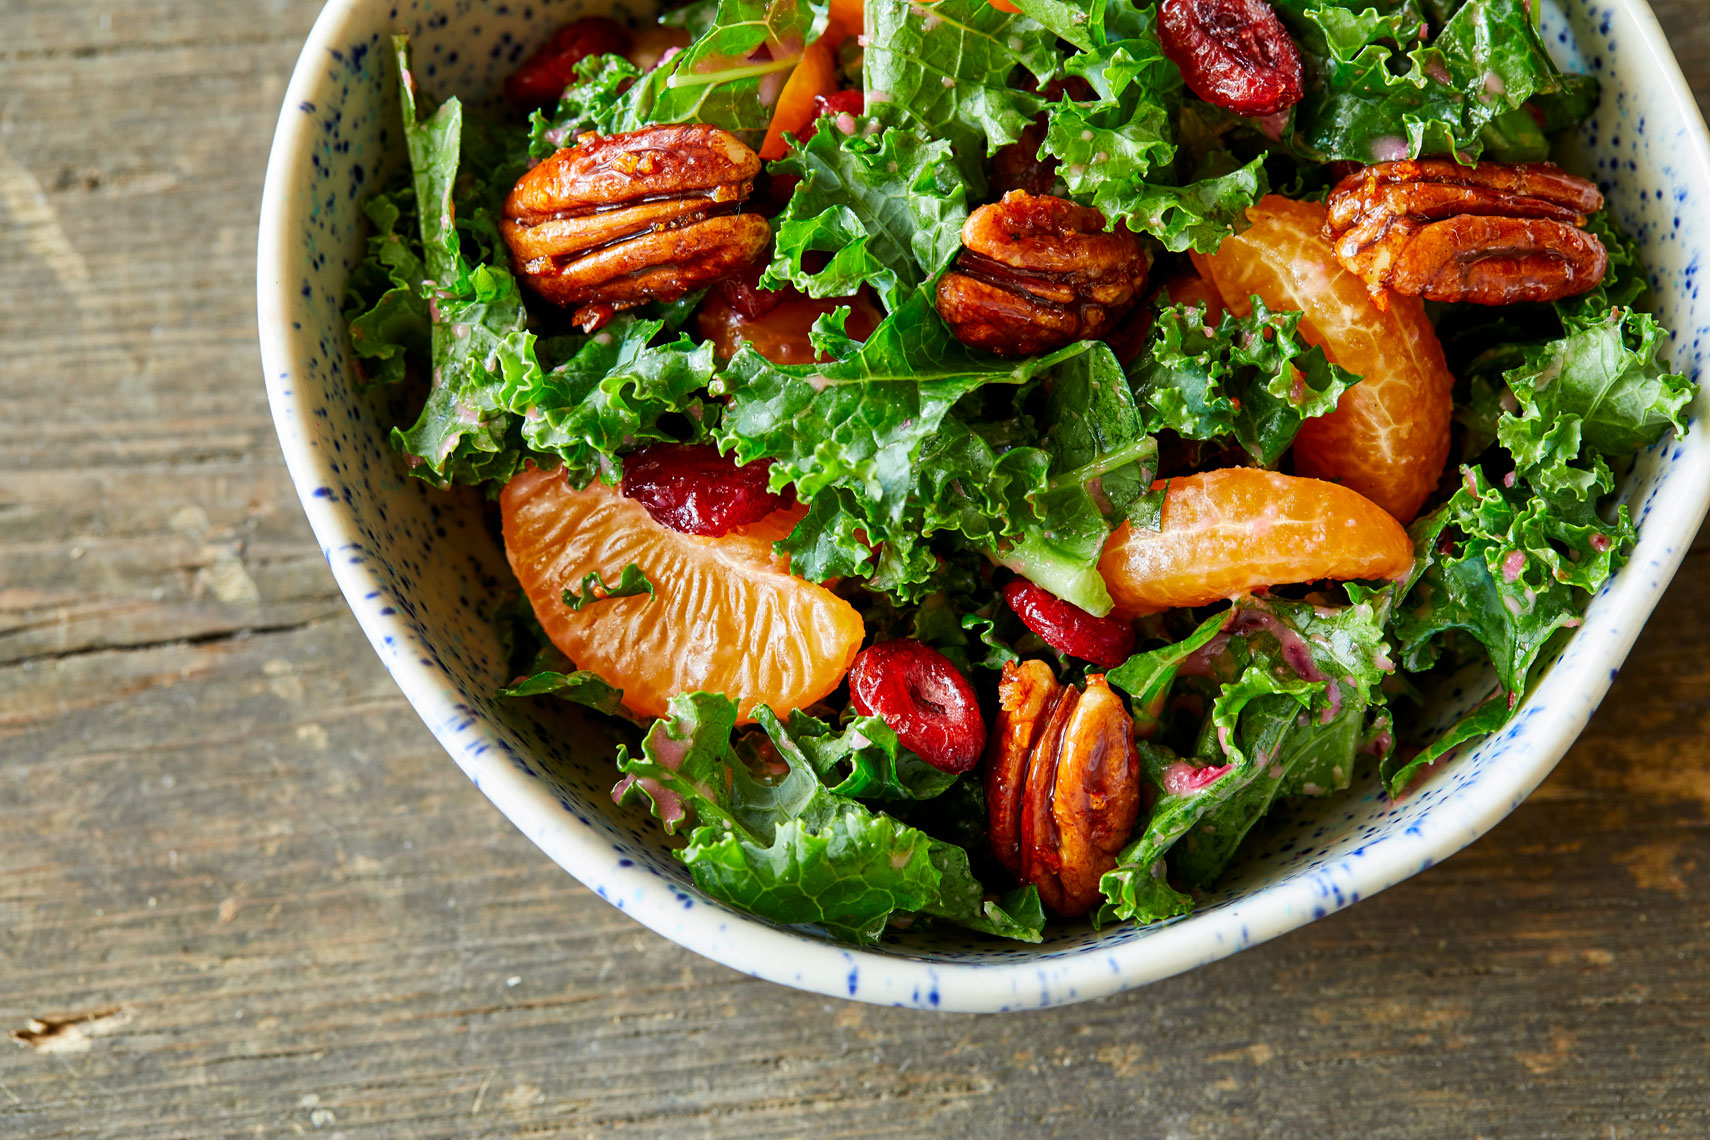 Mandarin_Orange_Kale_Salad_With_Cranberry__06_222